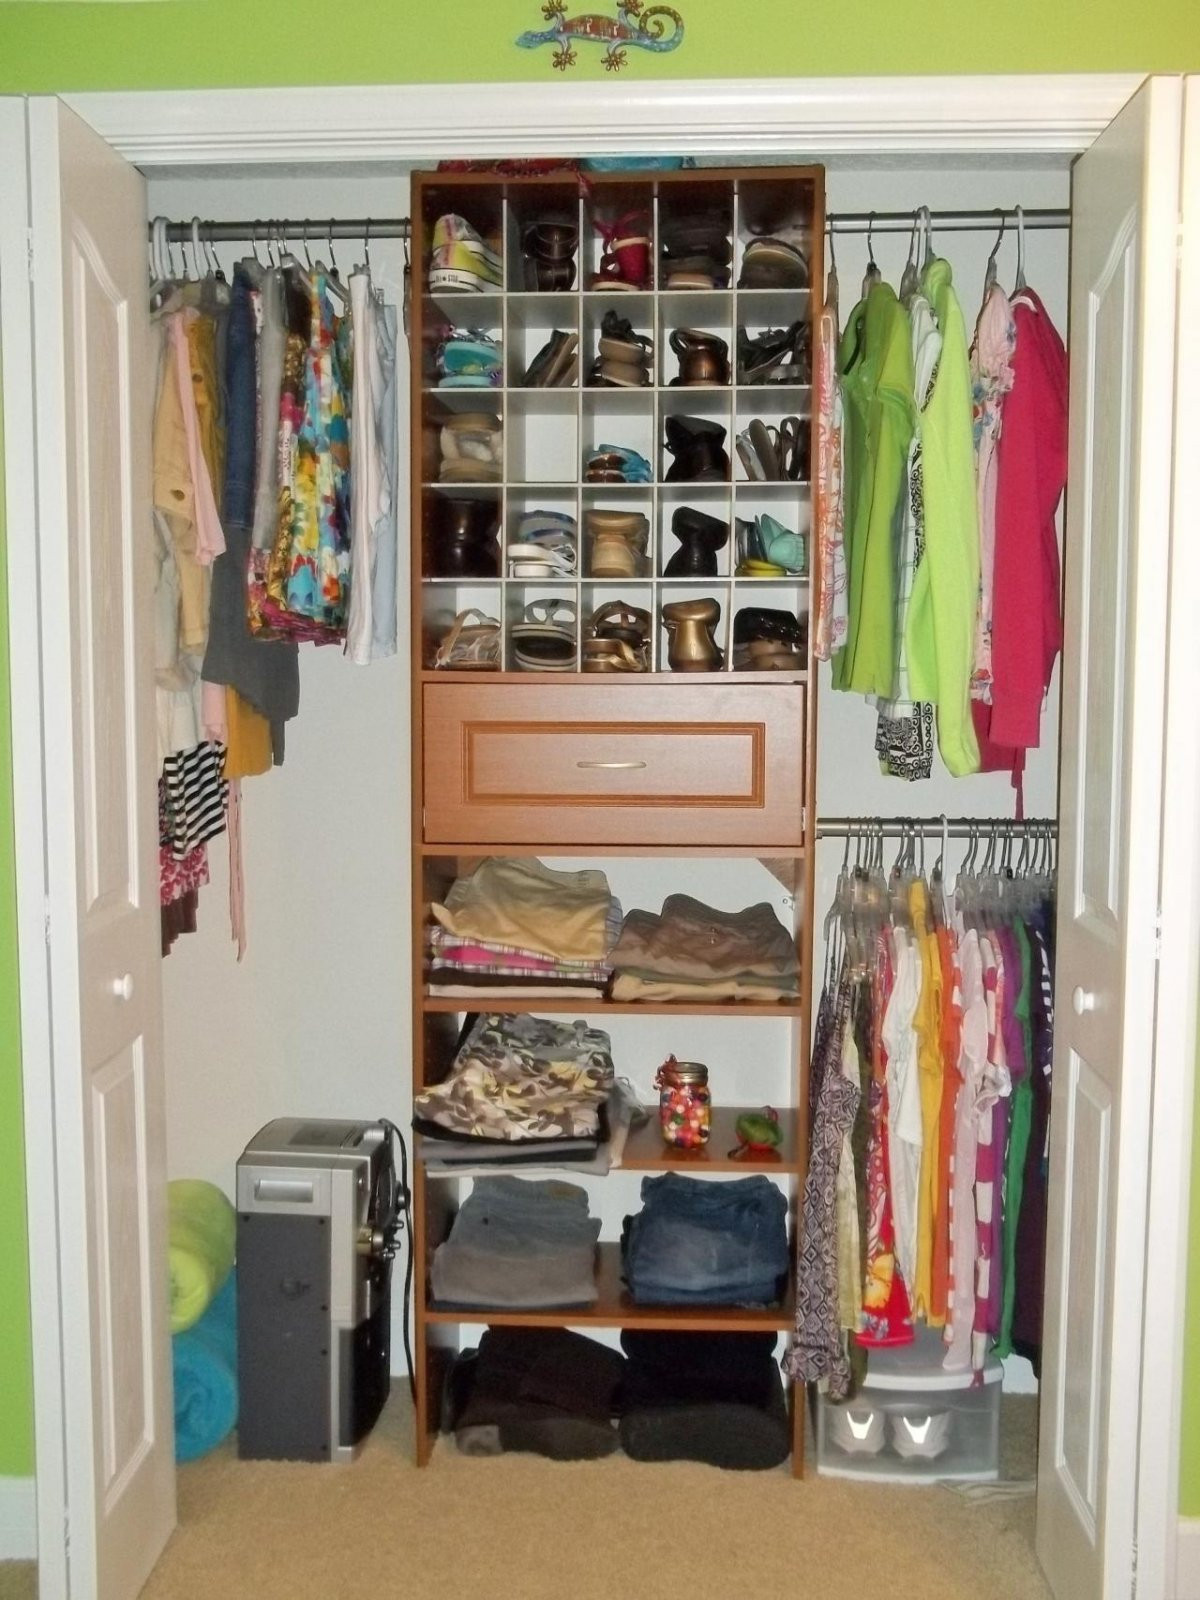 DIY Closet Organizer Ideas  Tidy Diy Closet Organization Ideas — Closet Ideas Diy